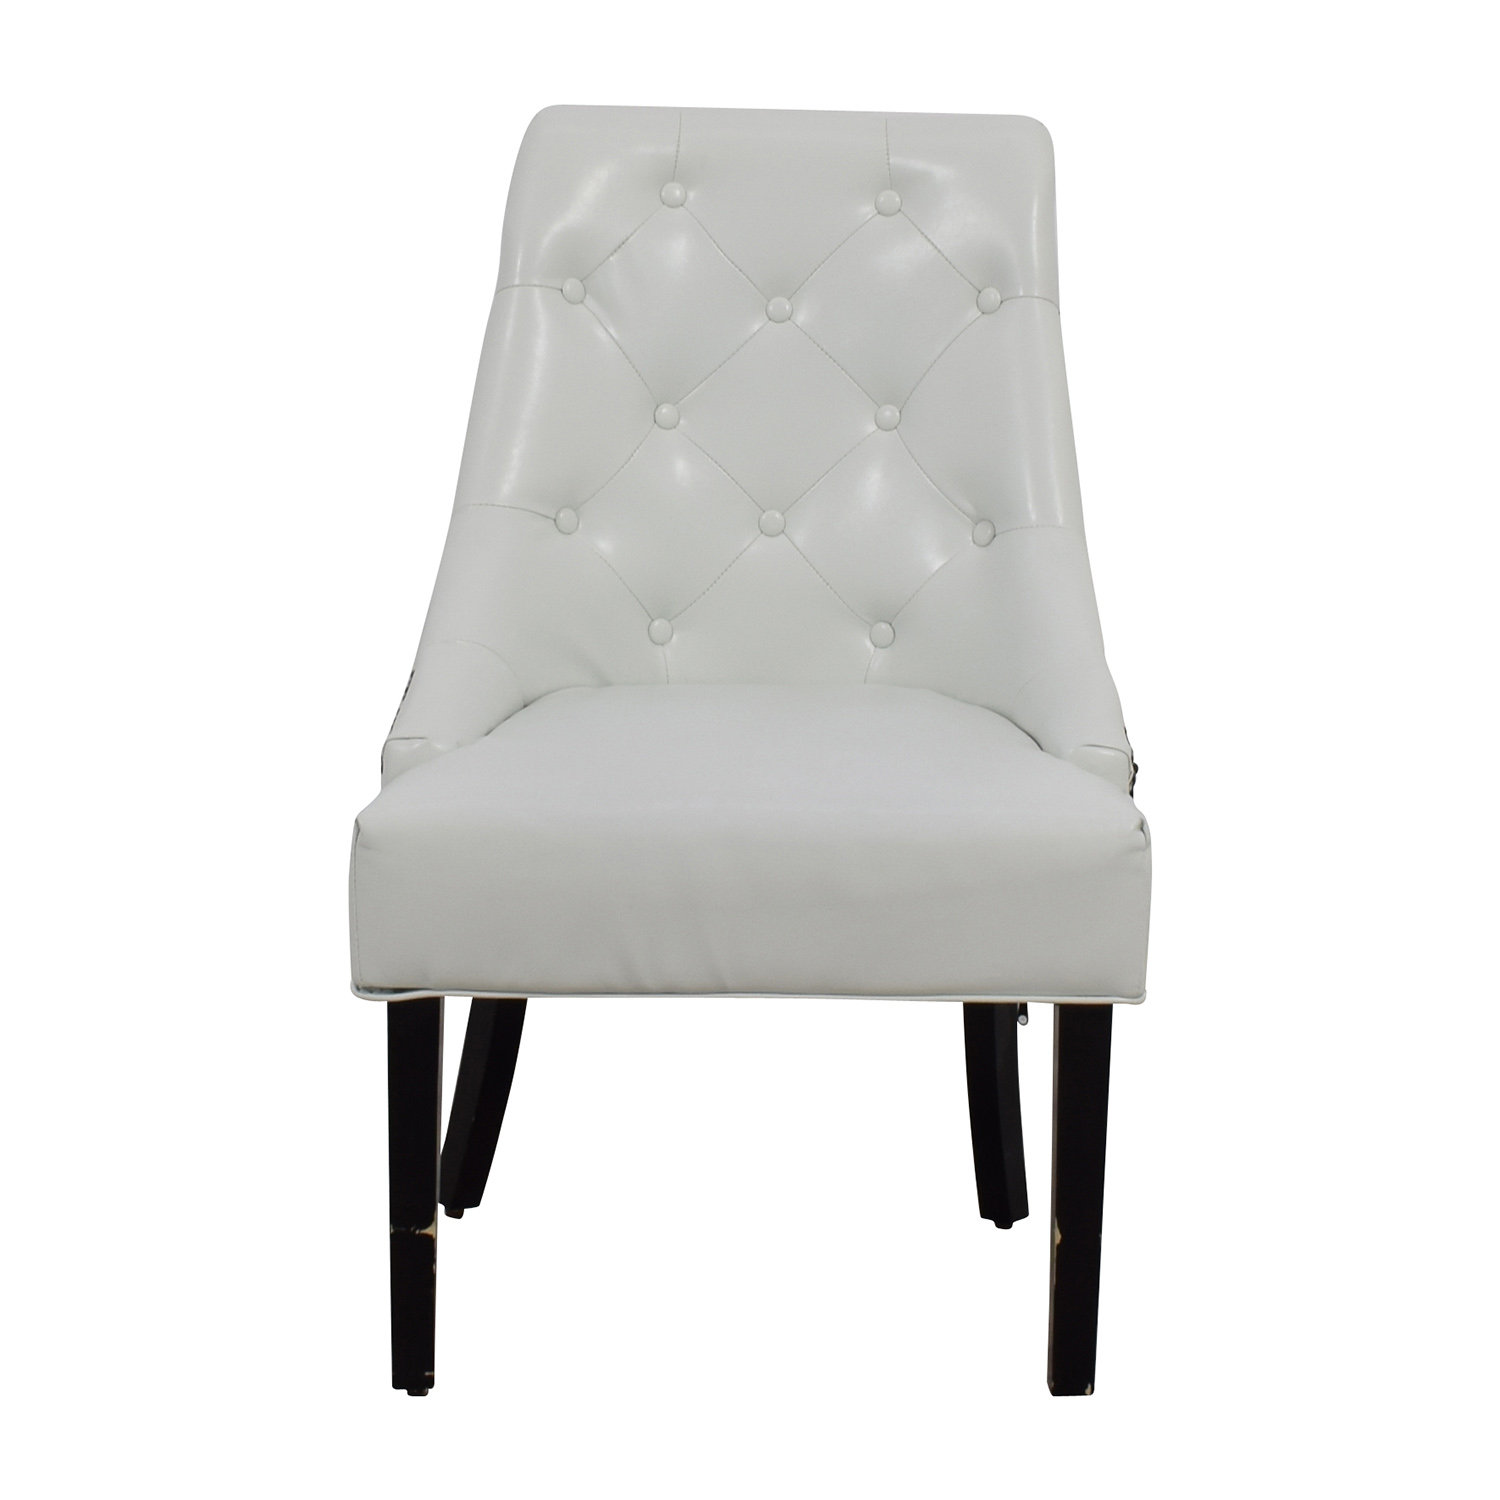 White Arm Chairs Chairs Used Chairs For Sale